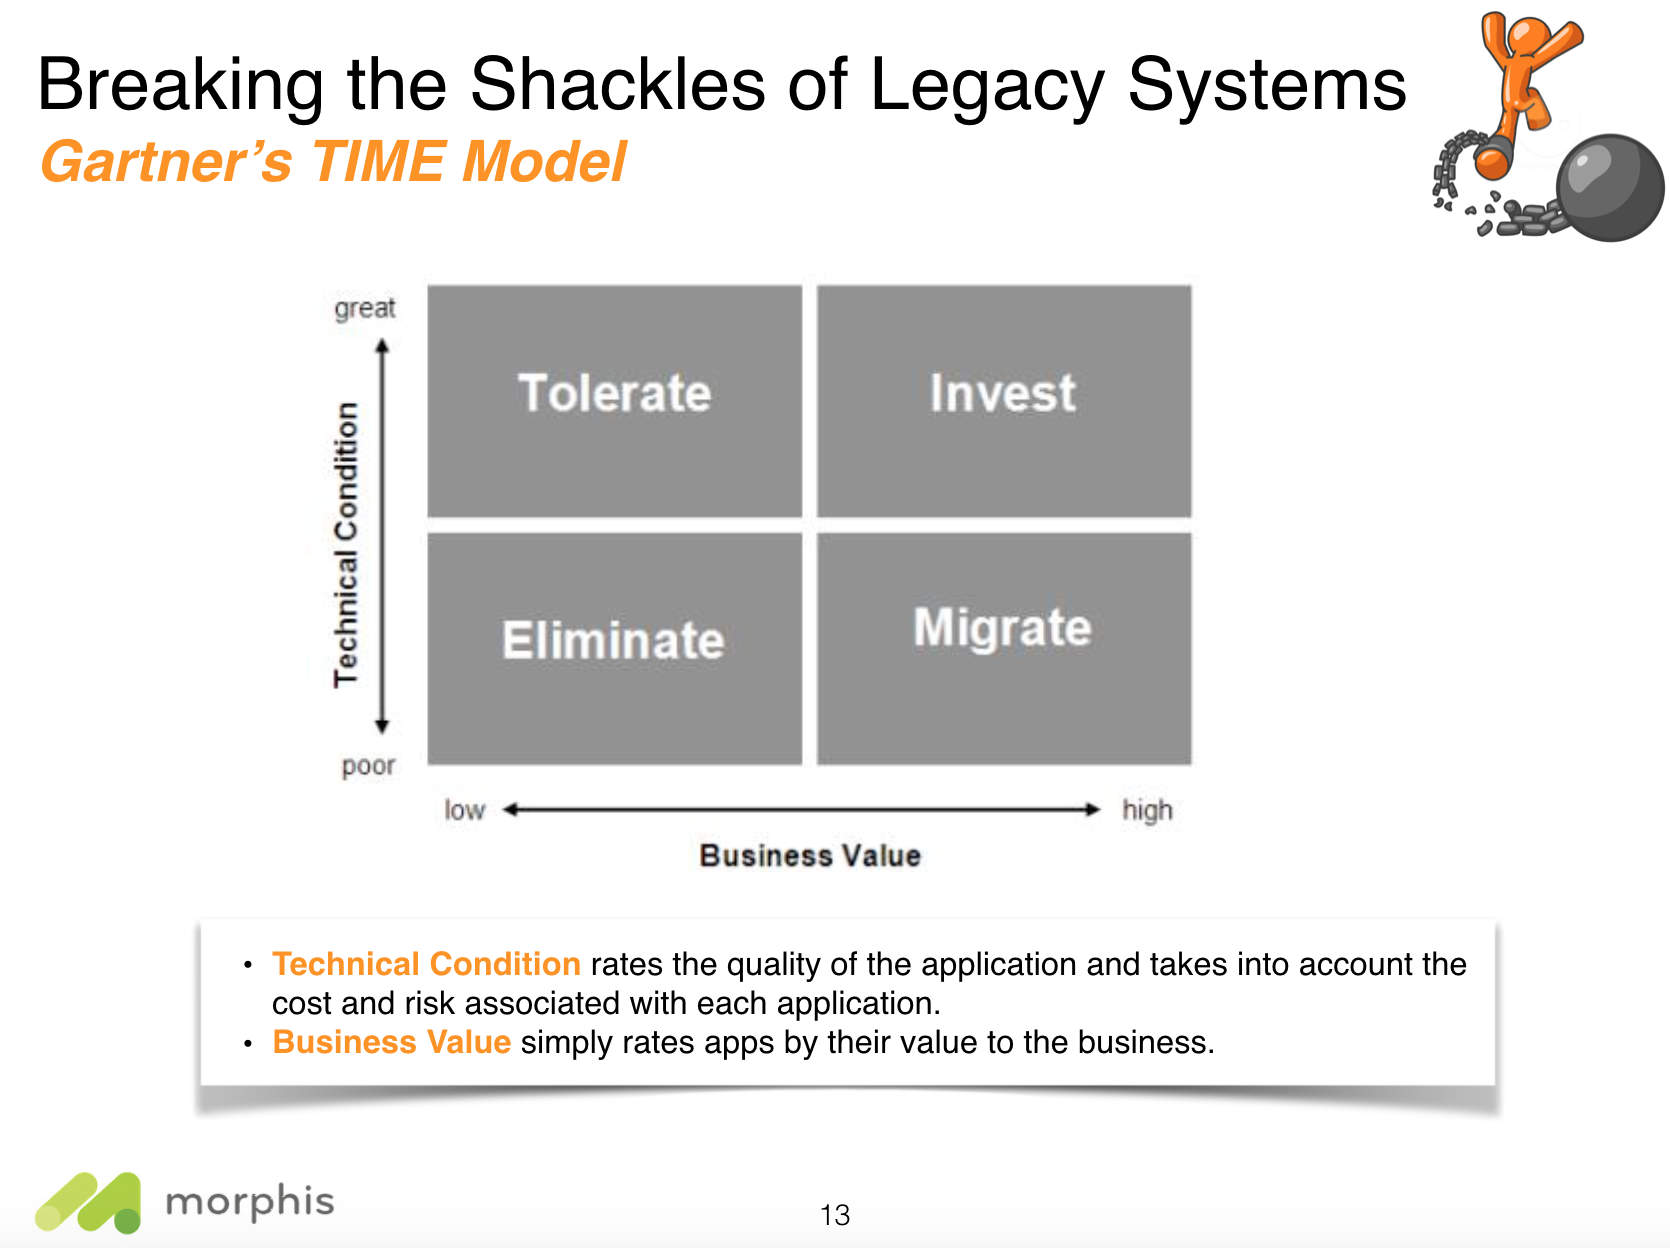 When and Why Legacy Modernization Using COTS Solutions Fail